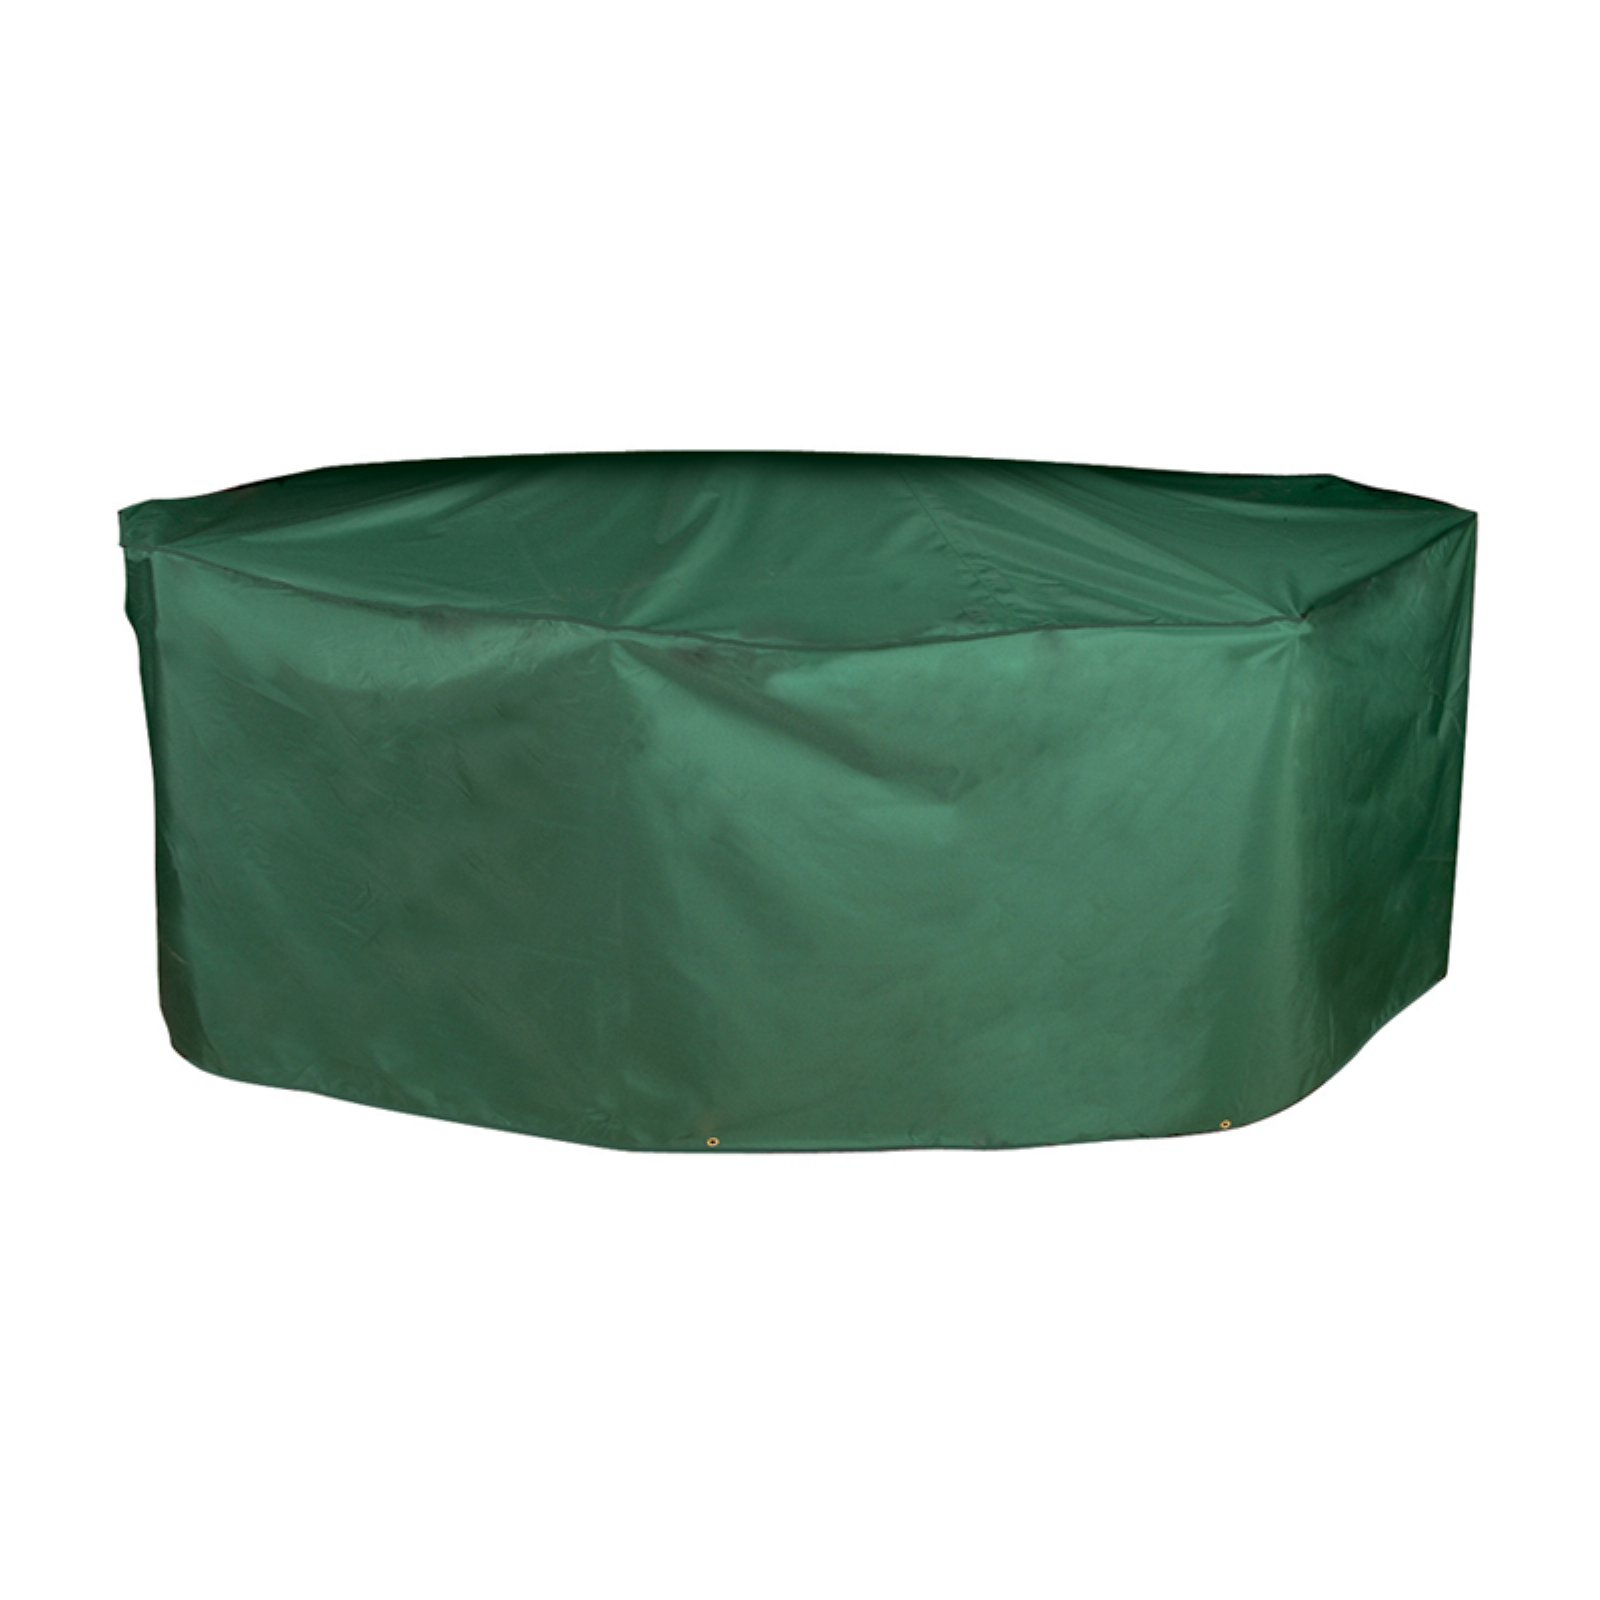 Bosmere C555 Rectangular Table Without Chairs Cover 67 X 37 In Green Patio Furniture Covers Rectangular Table Chair Cover